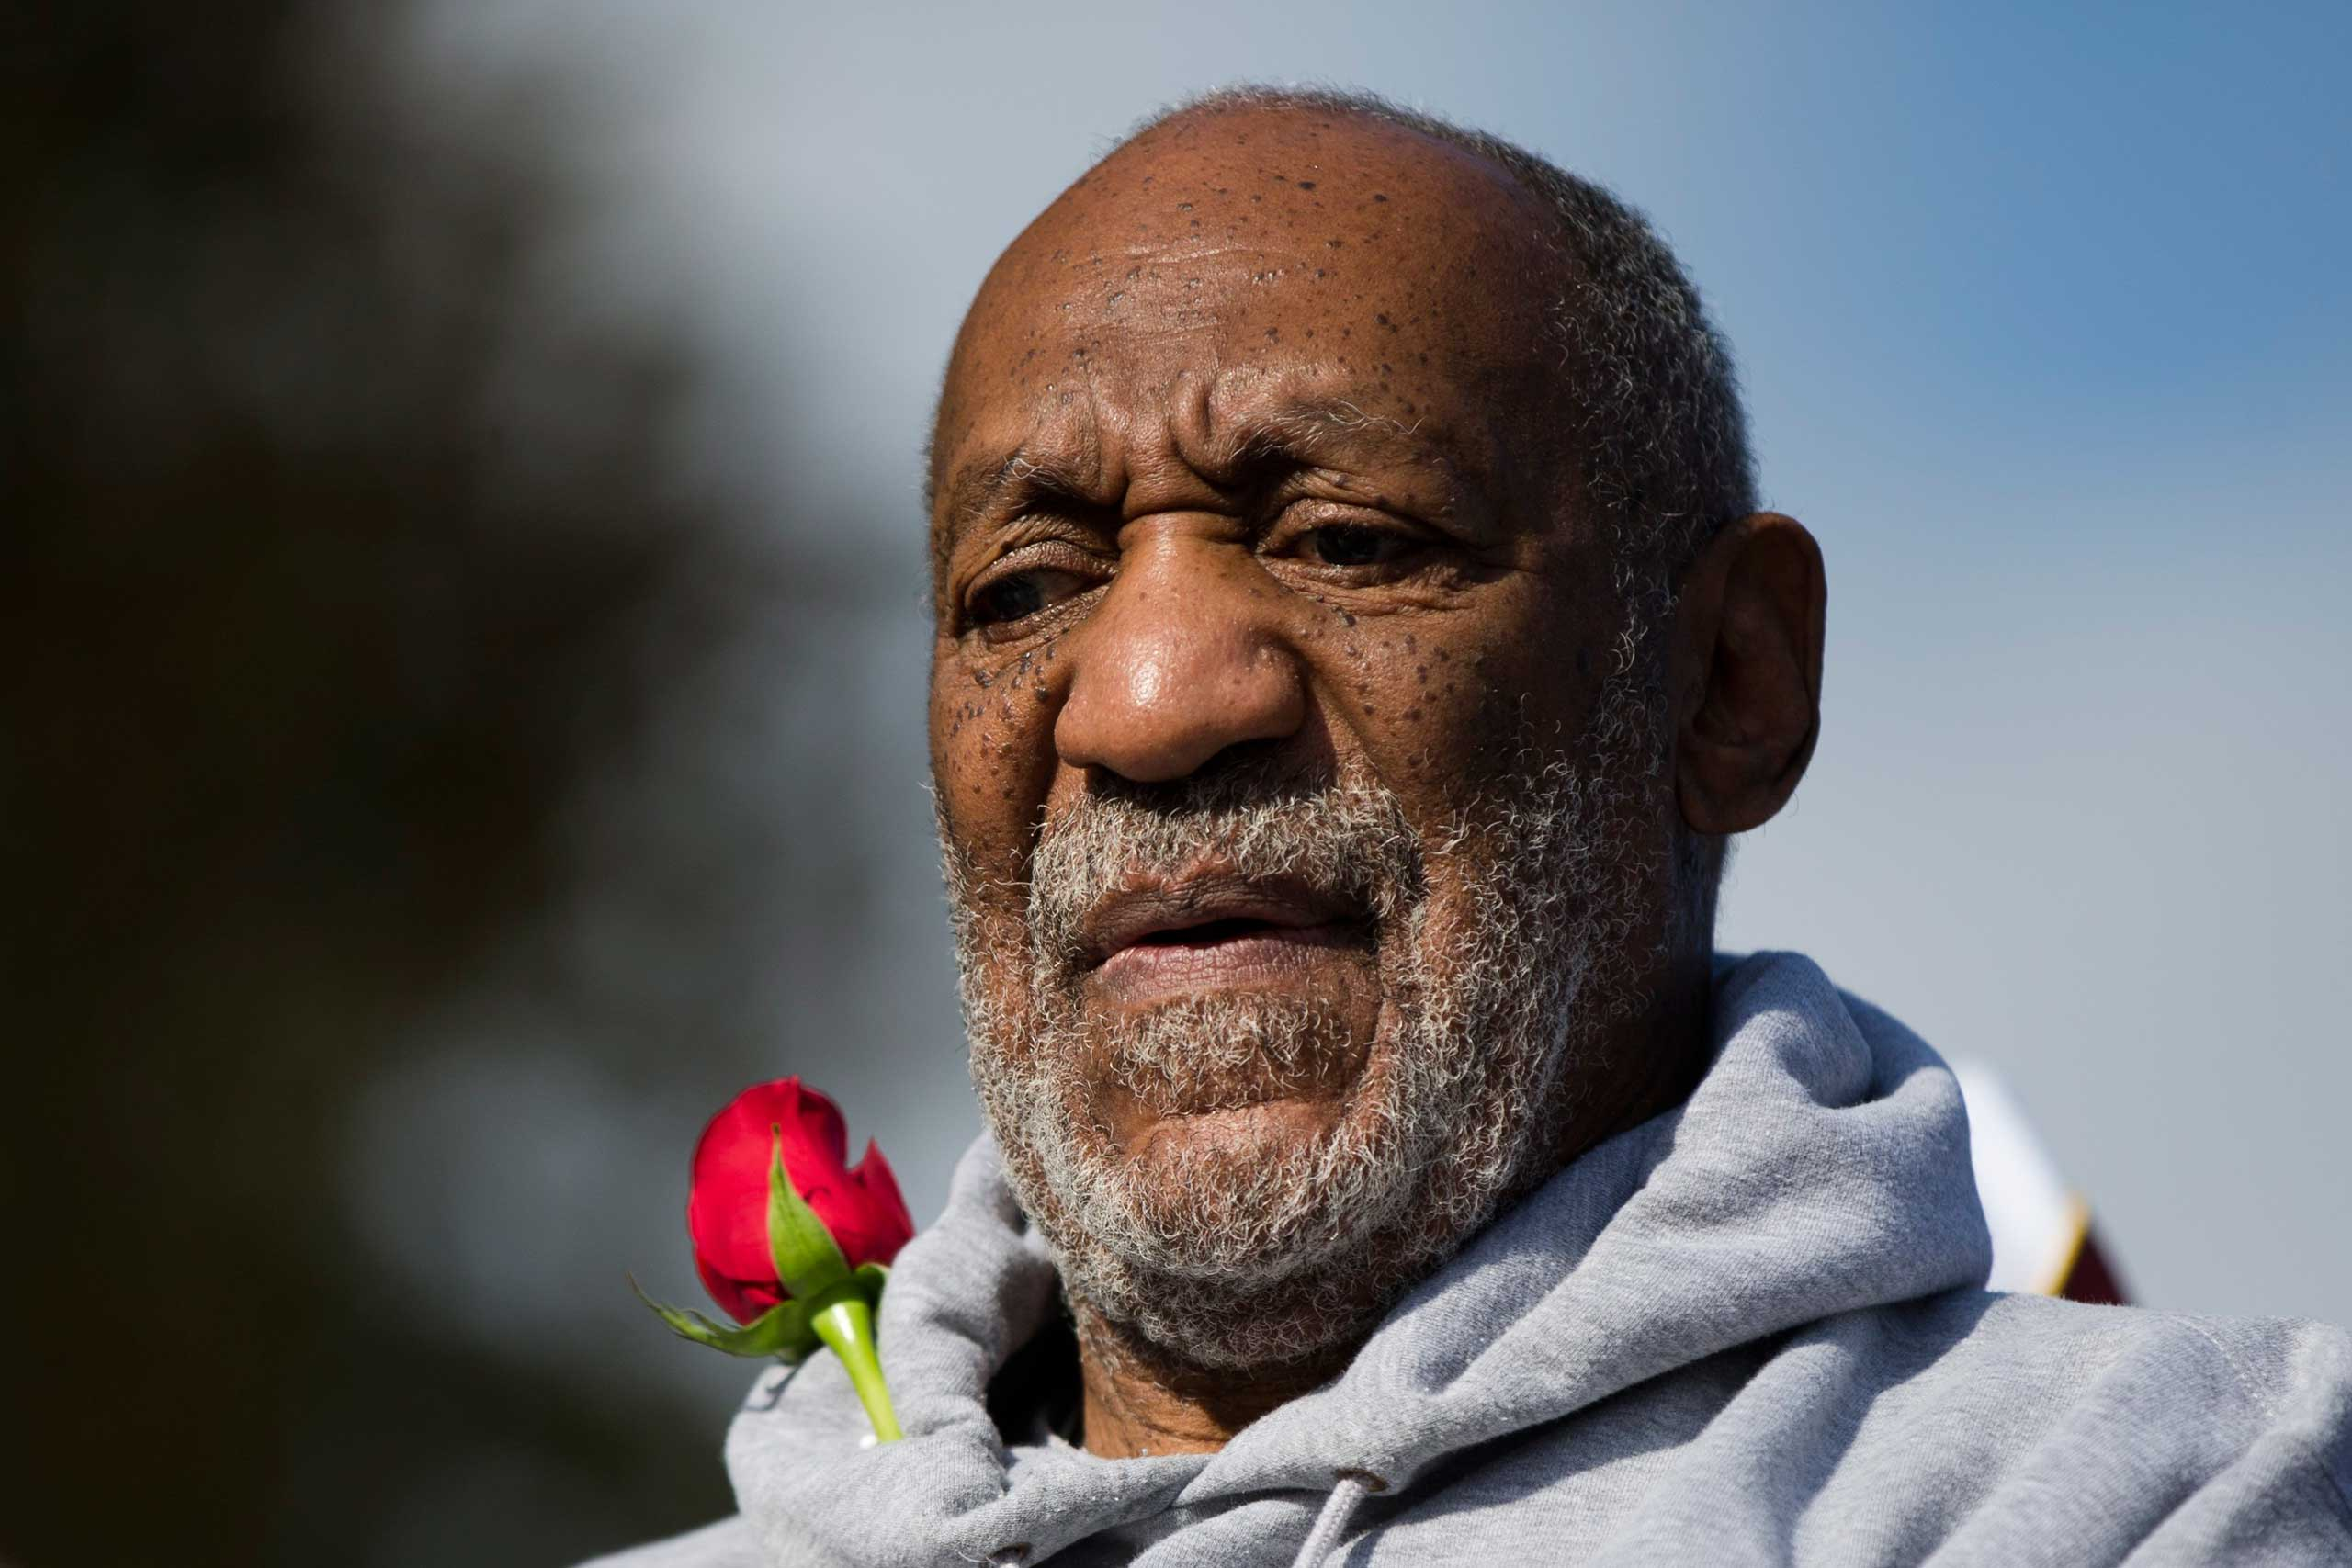 Entertainer and Navy veteran Bill Cosby at a Veterans Day ceremony, Nov. 11, 2014, at the The All Wars Memorial to Colored Soldiers and Sailors in Philadelphia.